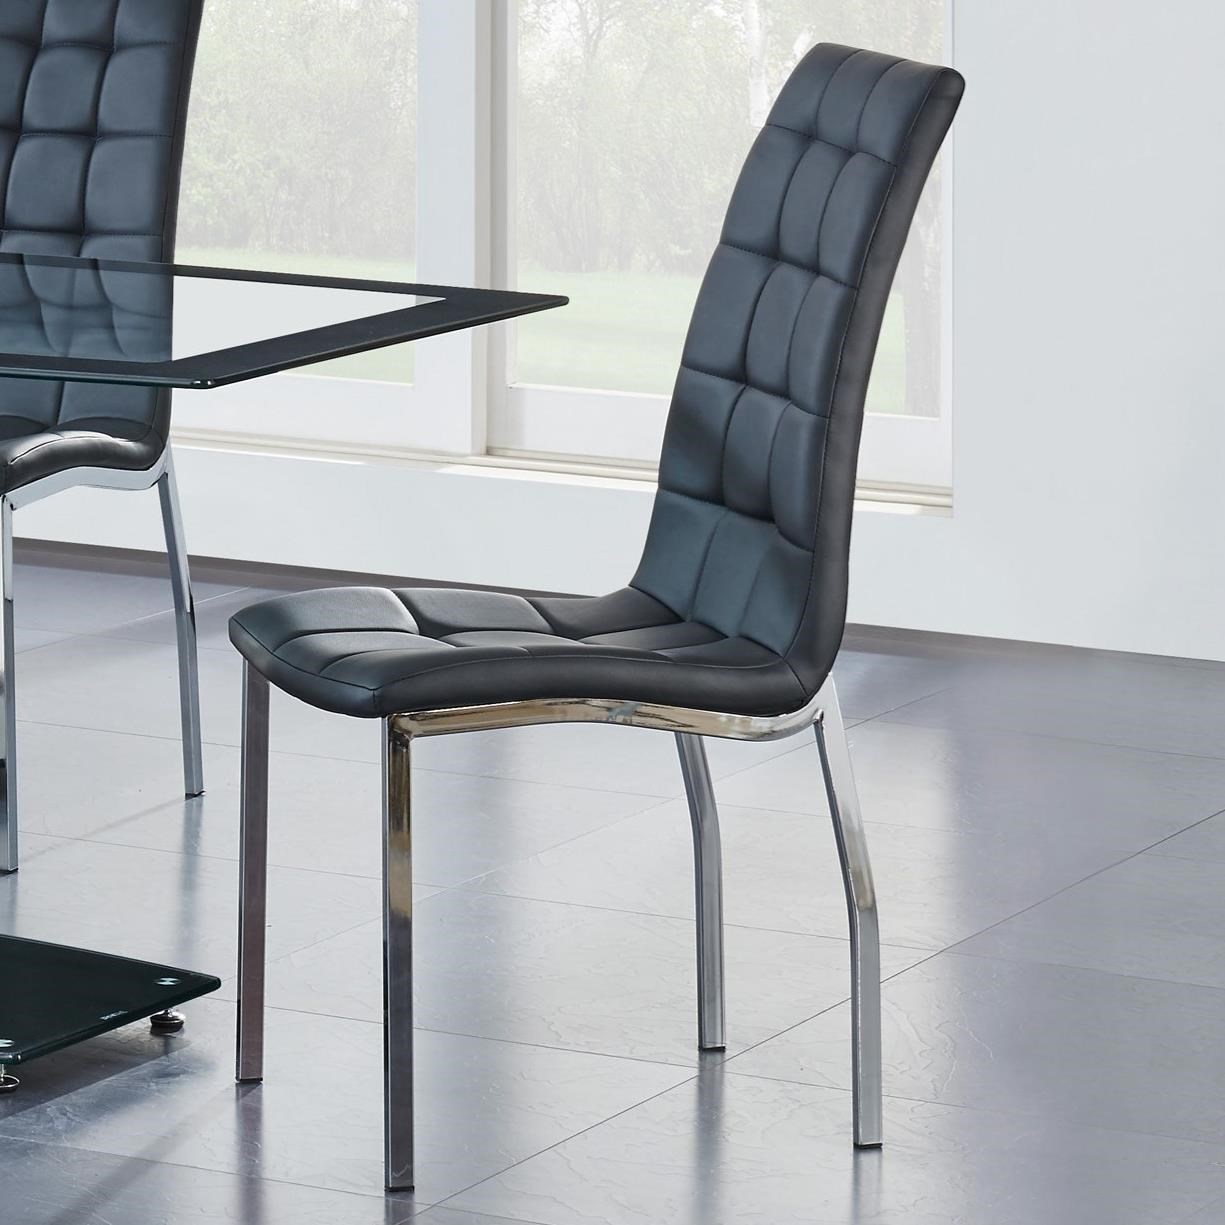 716 Dining Chair by Global Furniture at Nassau Furniture and Mattress